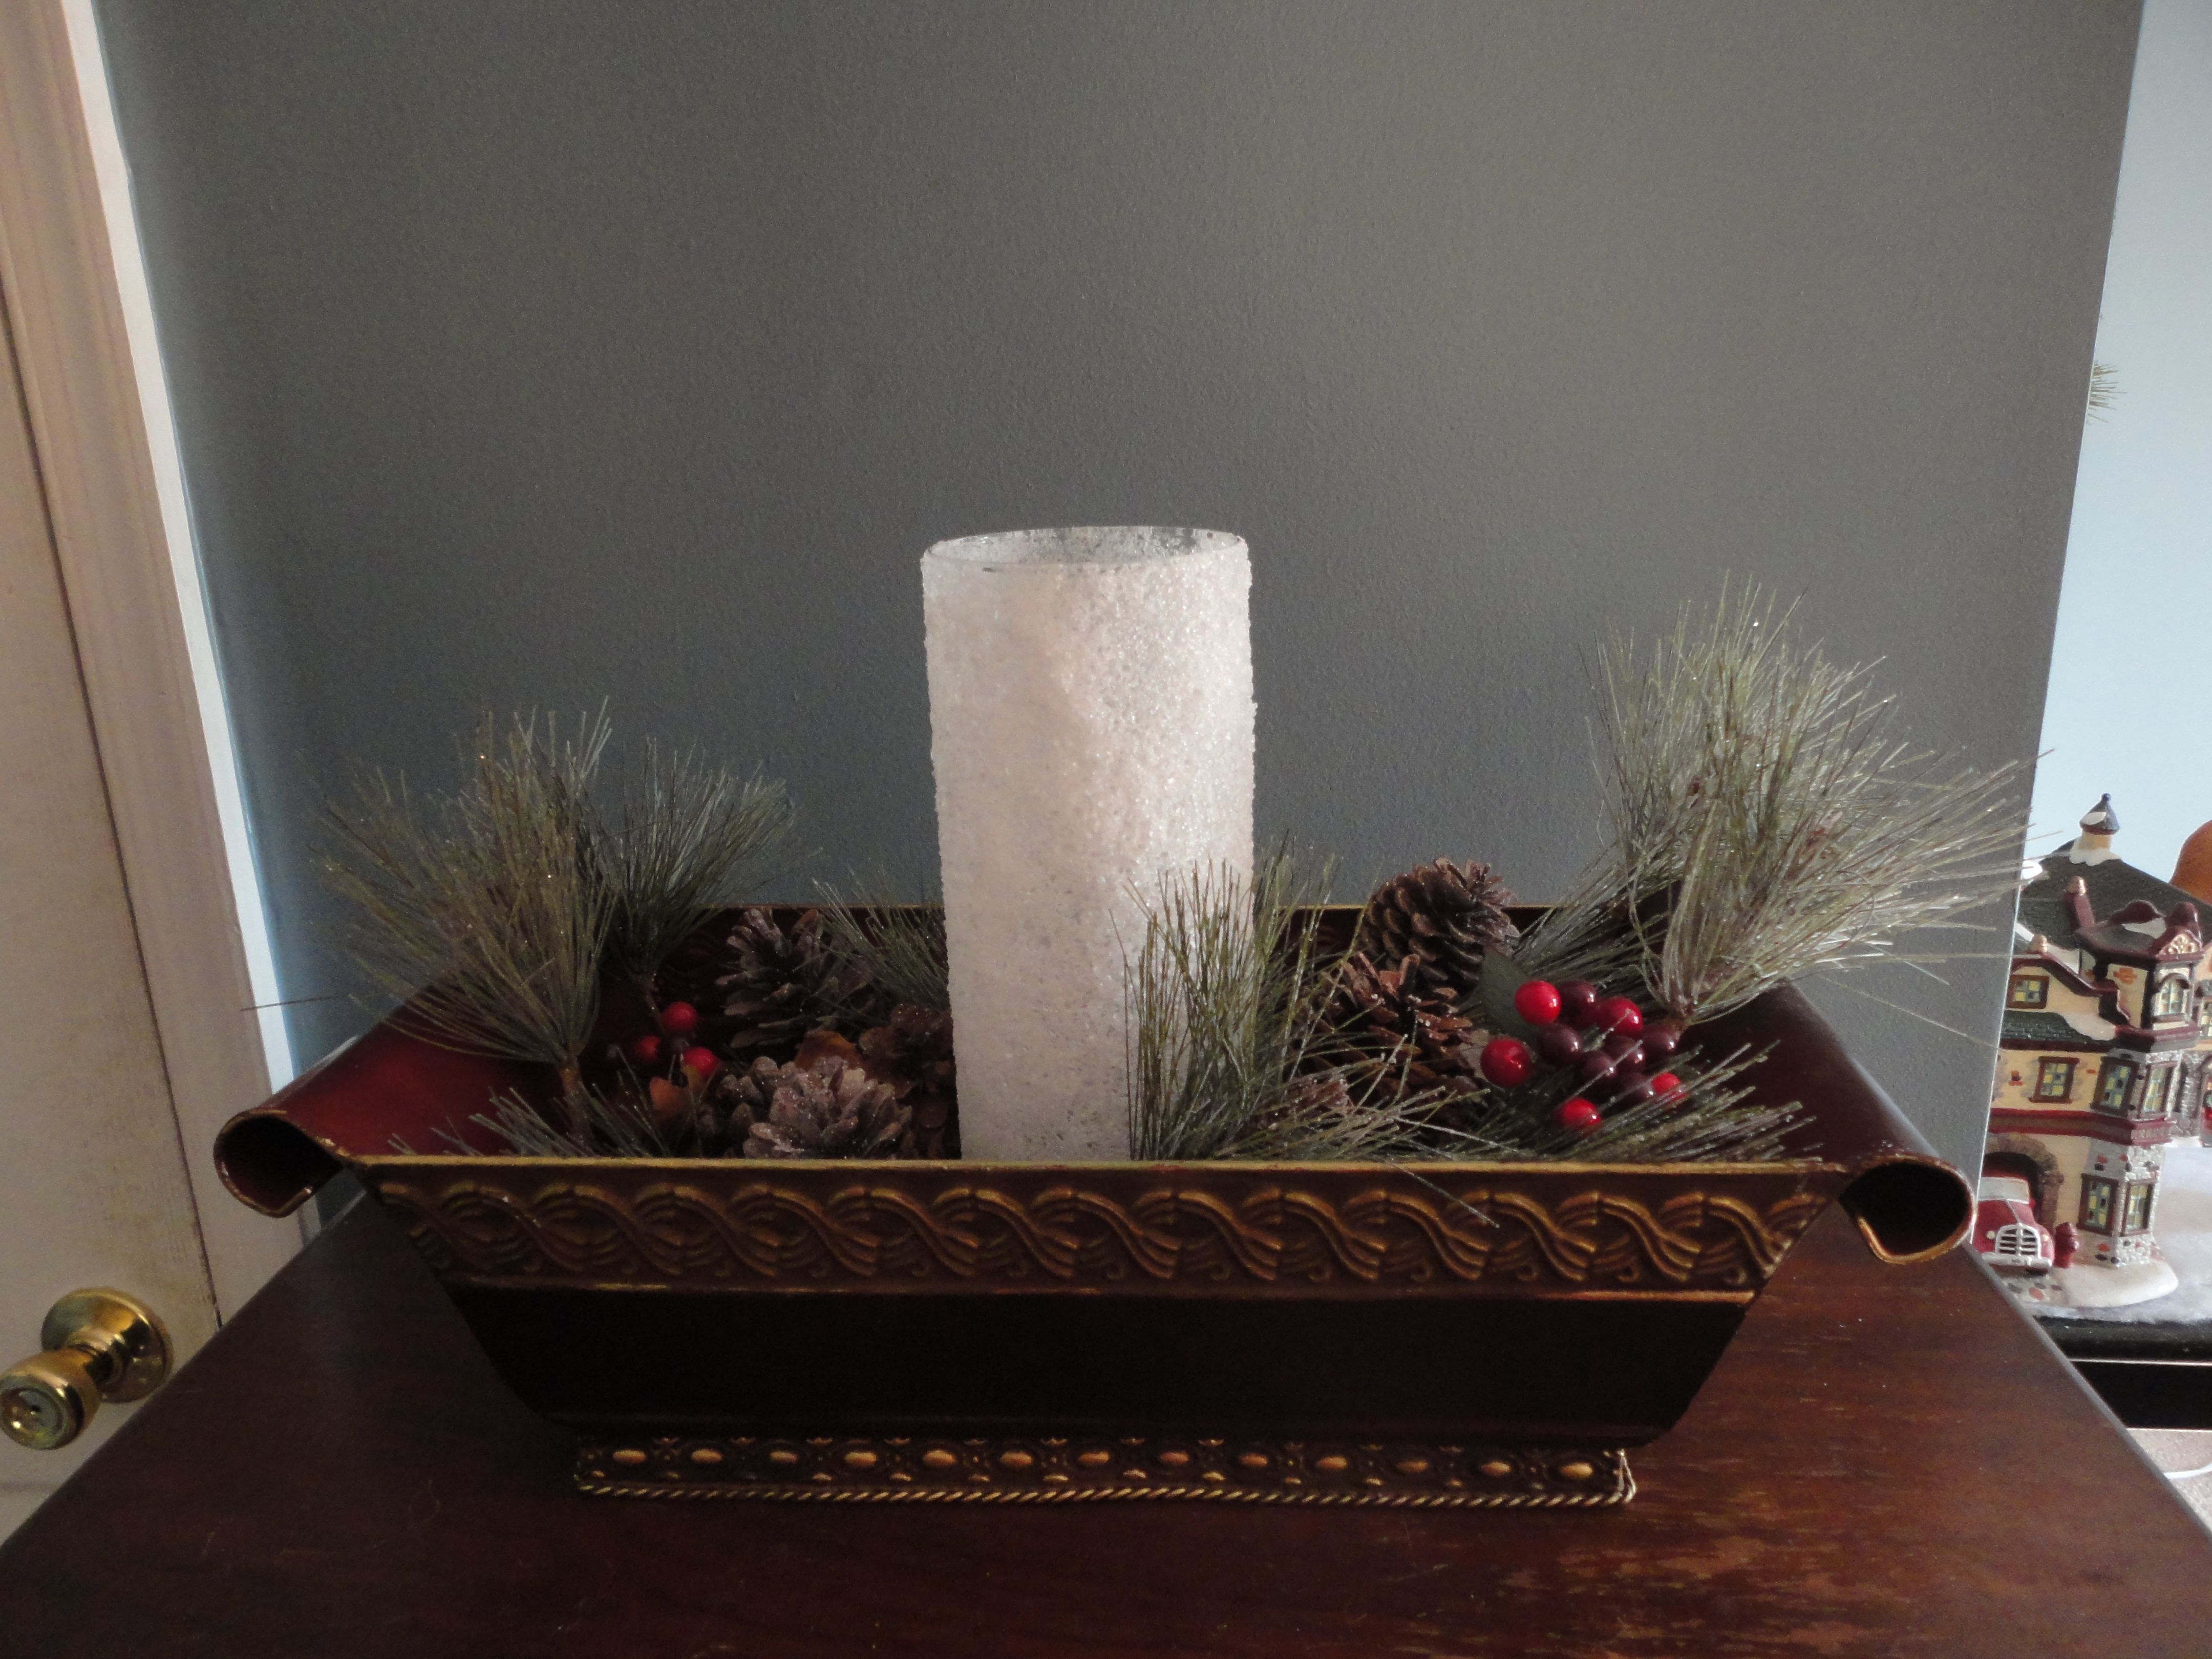 """The metal planter gave me the impression of a sleigh with it's rounded sides.  I added pinecones, greenery and berries, and then put a """"snowy"""" treatment on a tall cylinder candle holder. etsy.com/shop/holidaypretties"""